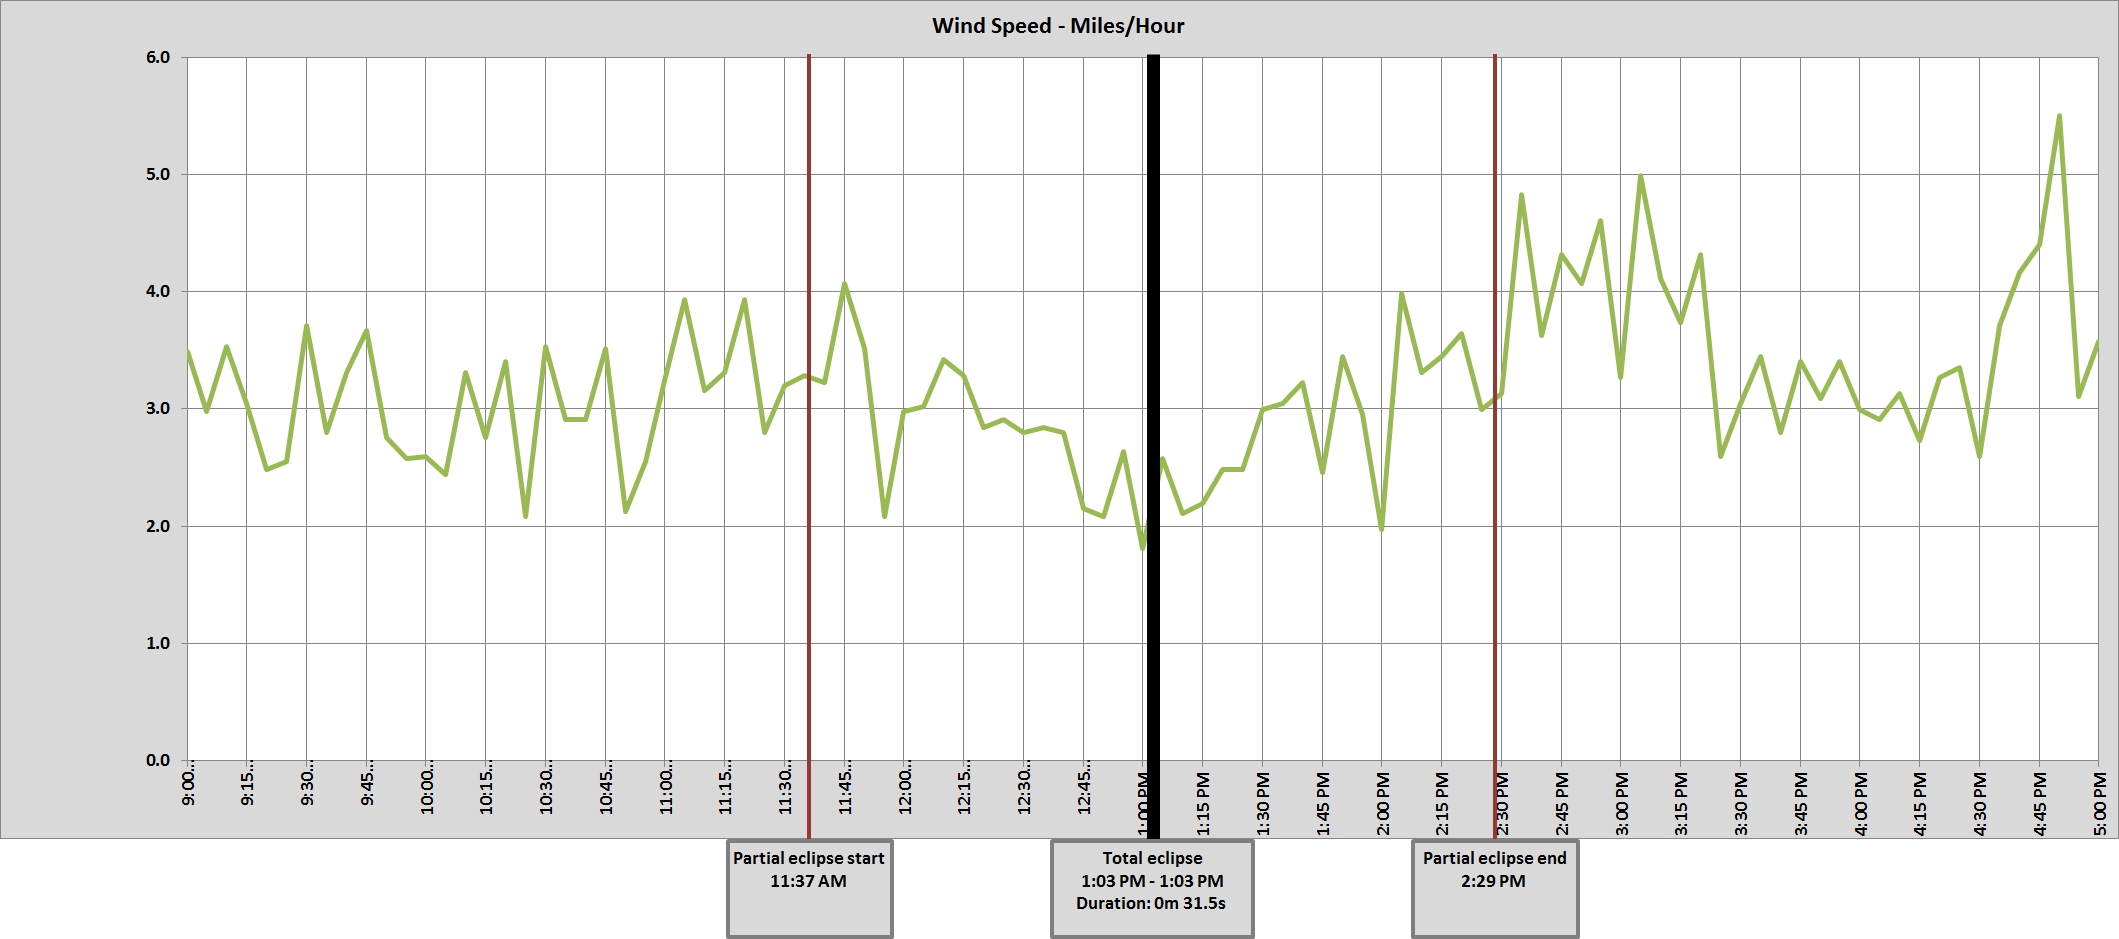 Graph of NE Lincoln  8 ENE wind speed